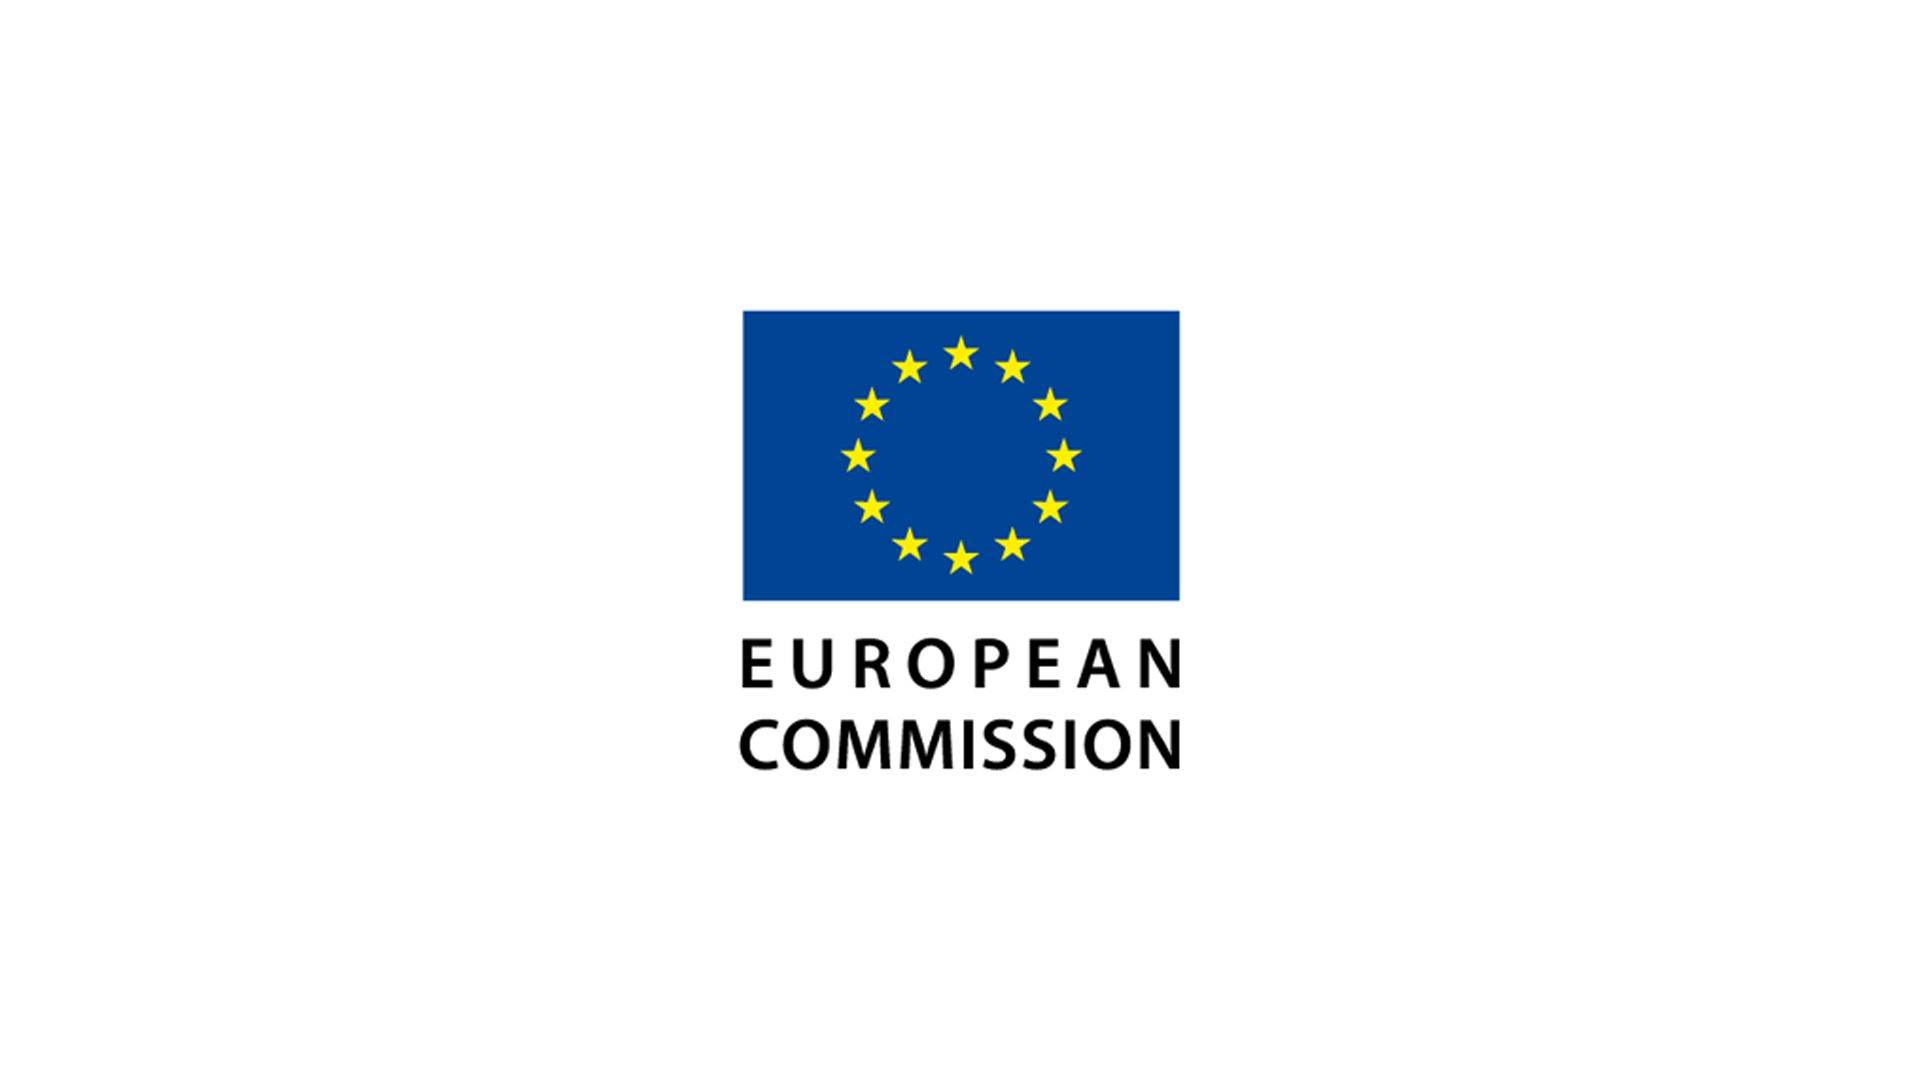 European Commission Campus Presentation - Careers in the European Commission